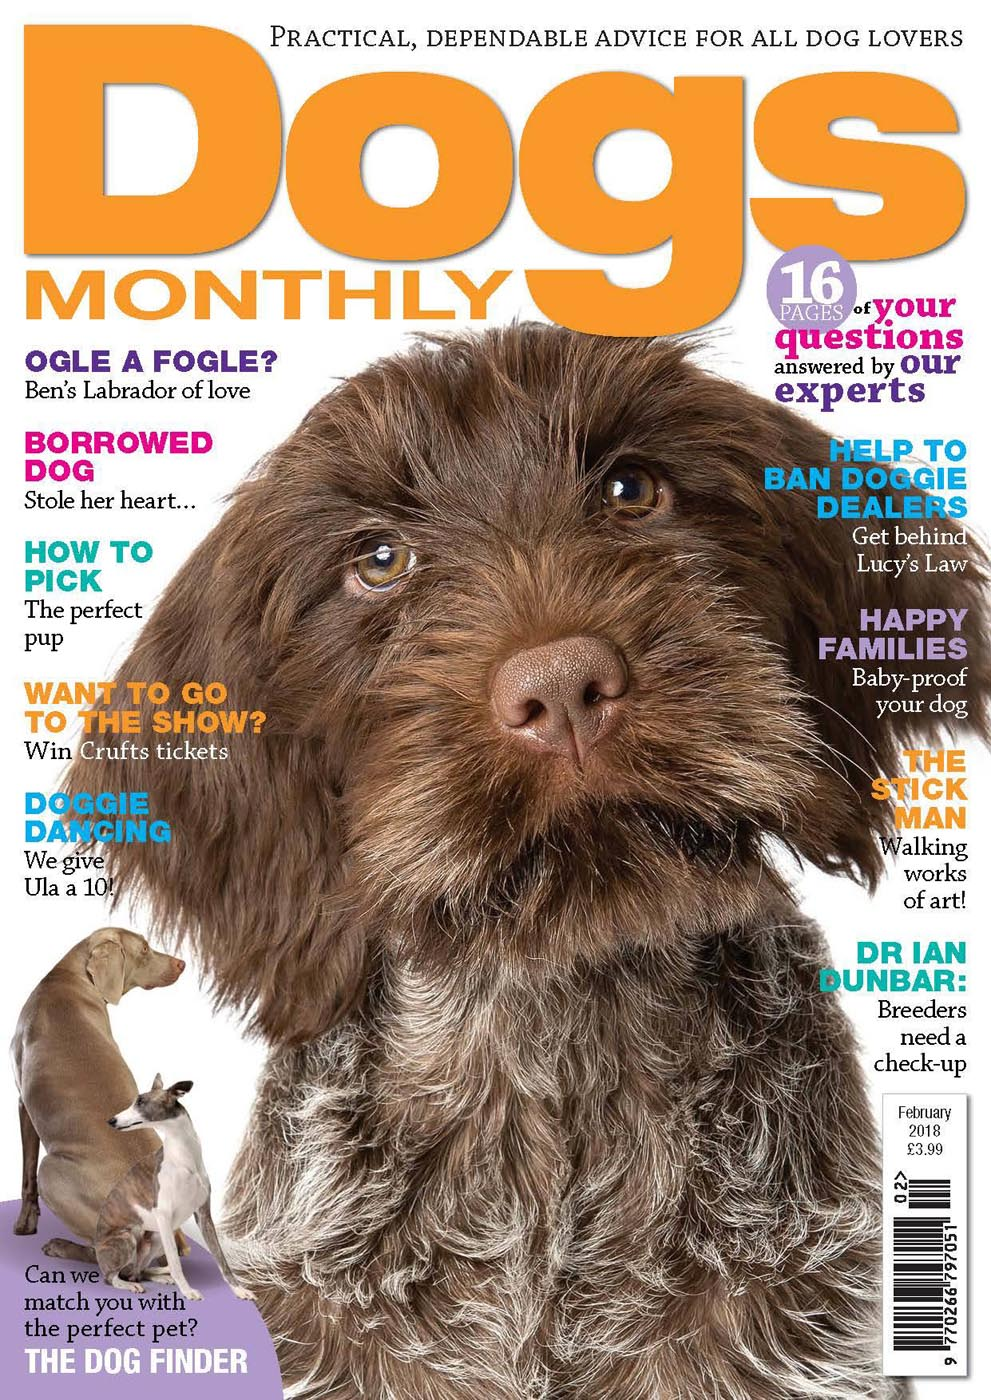 Feb 2018 Dogs Monthly